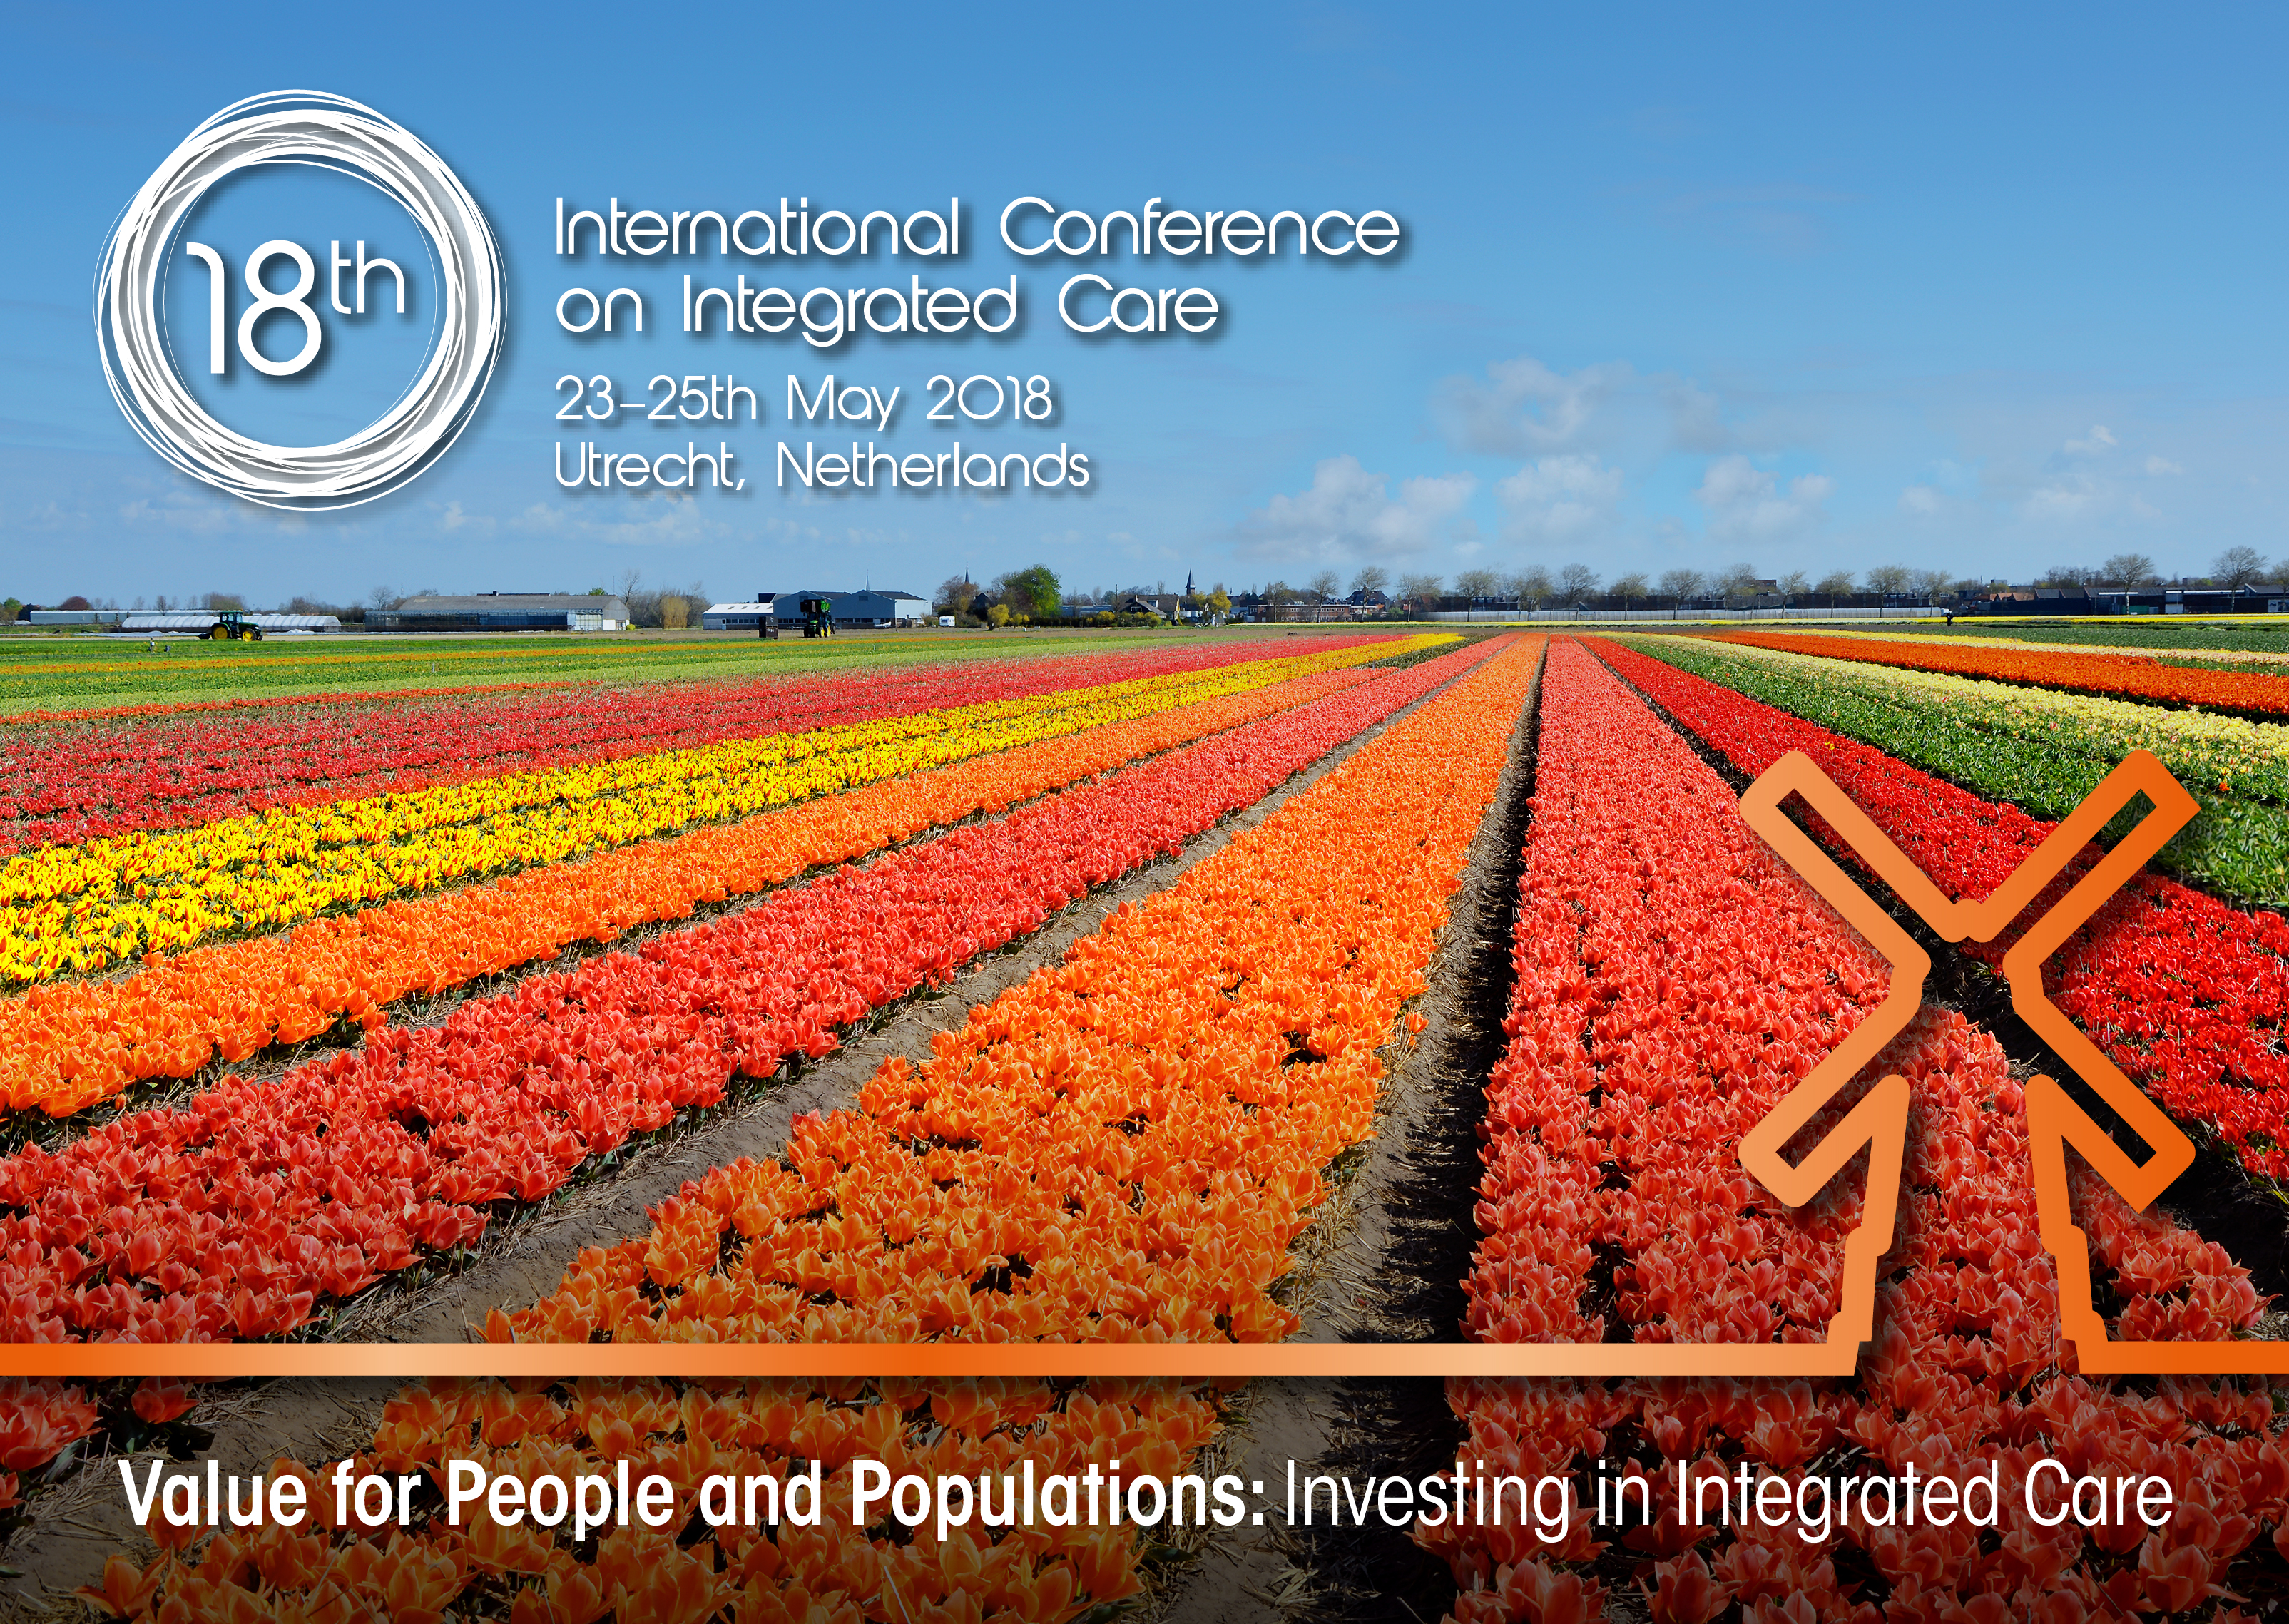 ICIC18 - 18th International Conference on Integrated Care, Utrecht